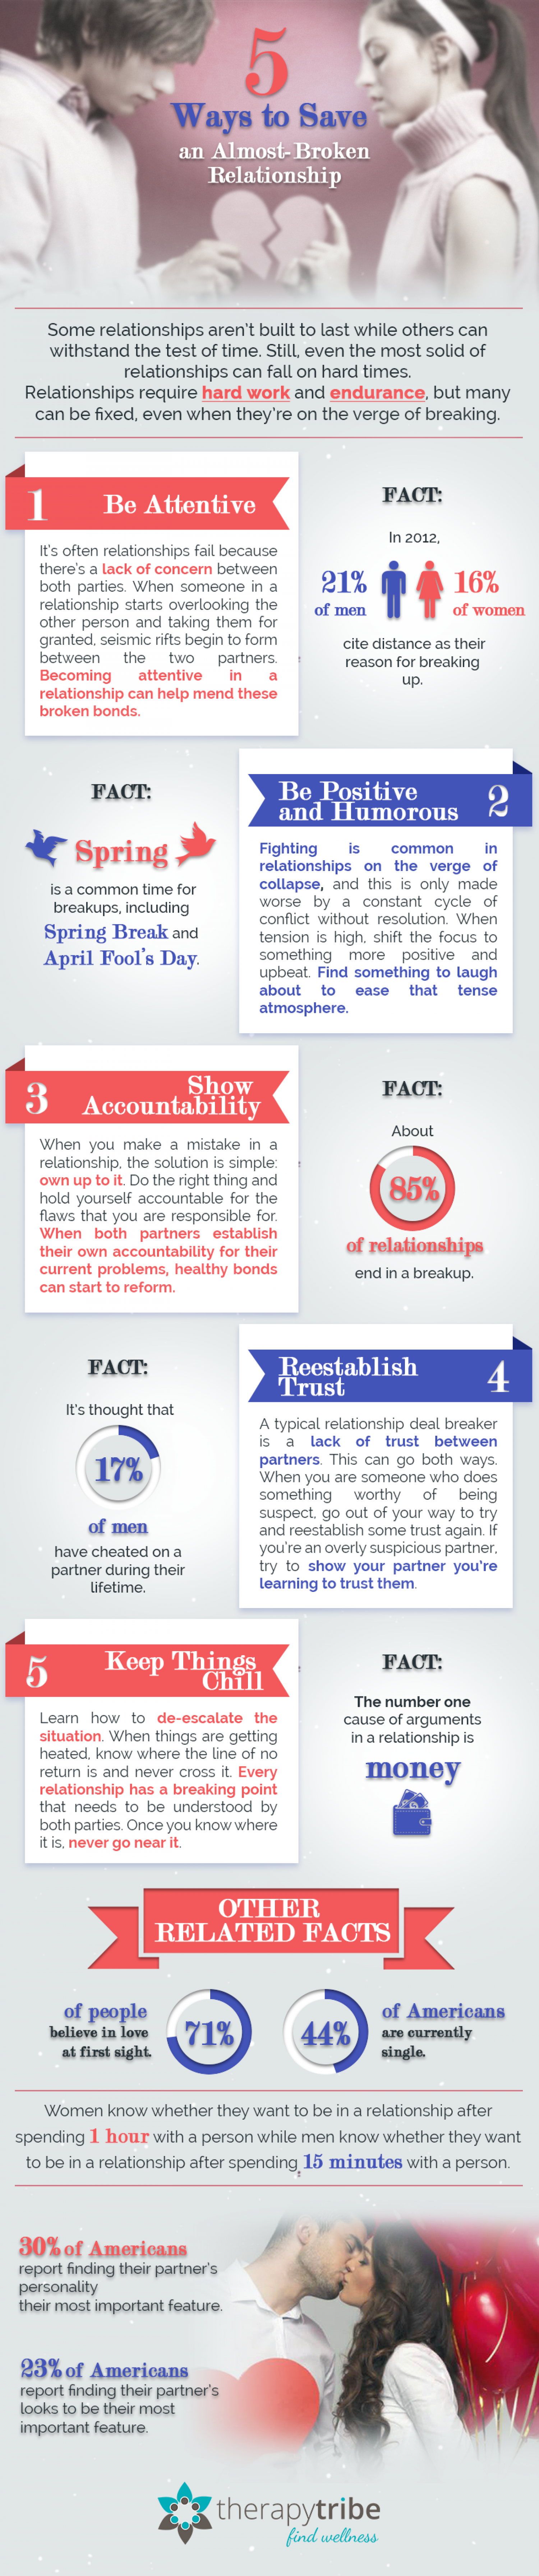 5 Ways to Save an Almost Broken Relationship Infographic